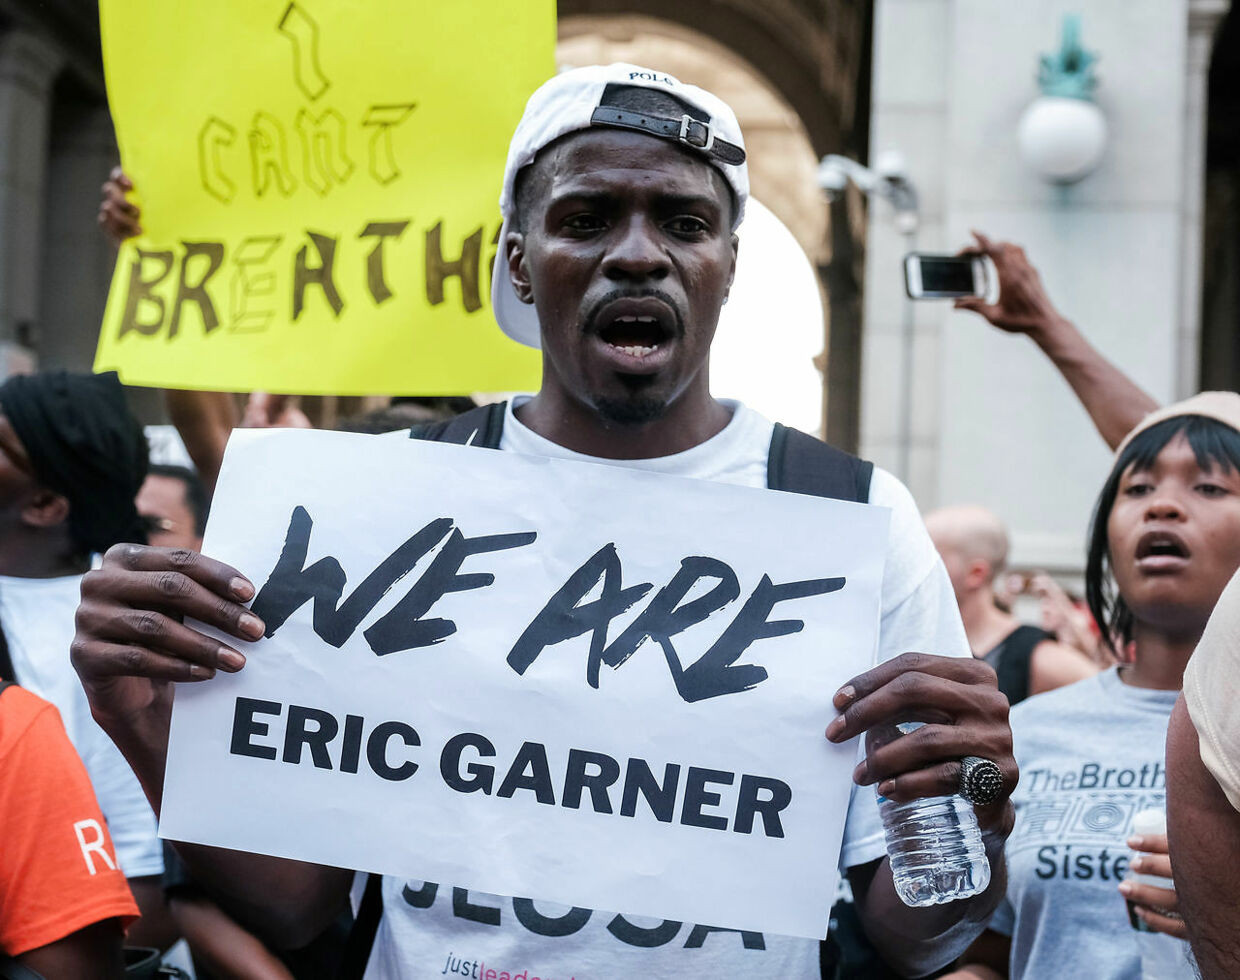 Protesters march and rally on the fifth anniversary of the death of Eric Garner, a day after federal prosecutors announced their decision not to prosecute NYPD officer Daniel Pantaleo or other officers for charges related to his death, in New York, U.S., July 17, 2019. REUTERS/Michael A. McCoy. (Foto: MICHAEL MCCOY/Ritzau Scanpix)